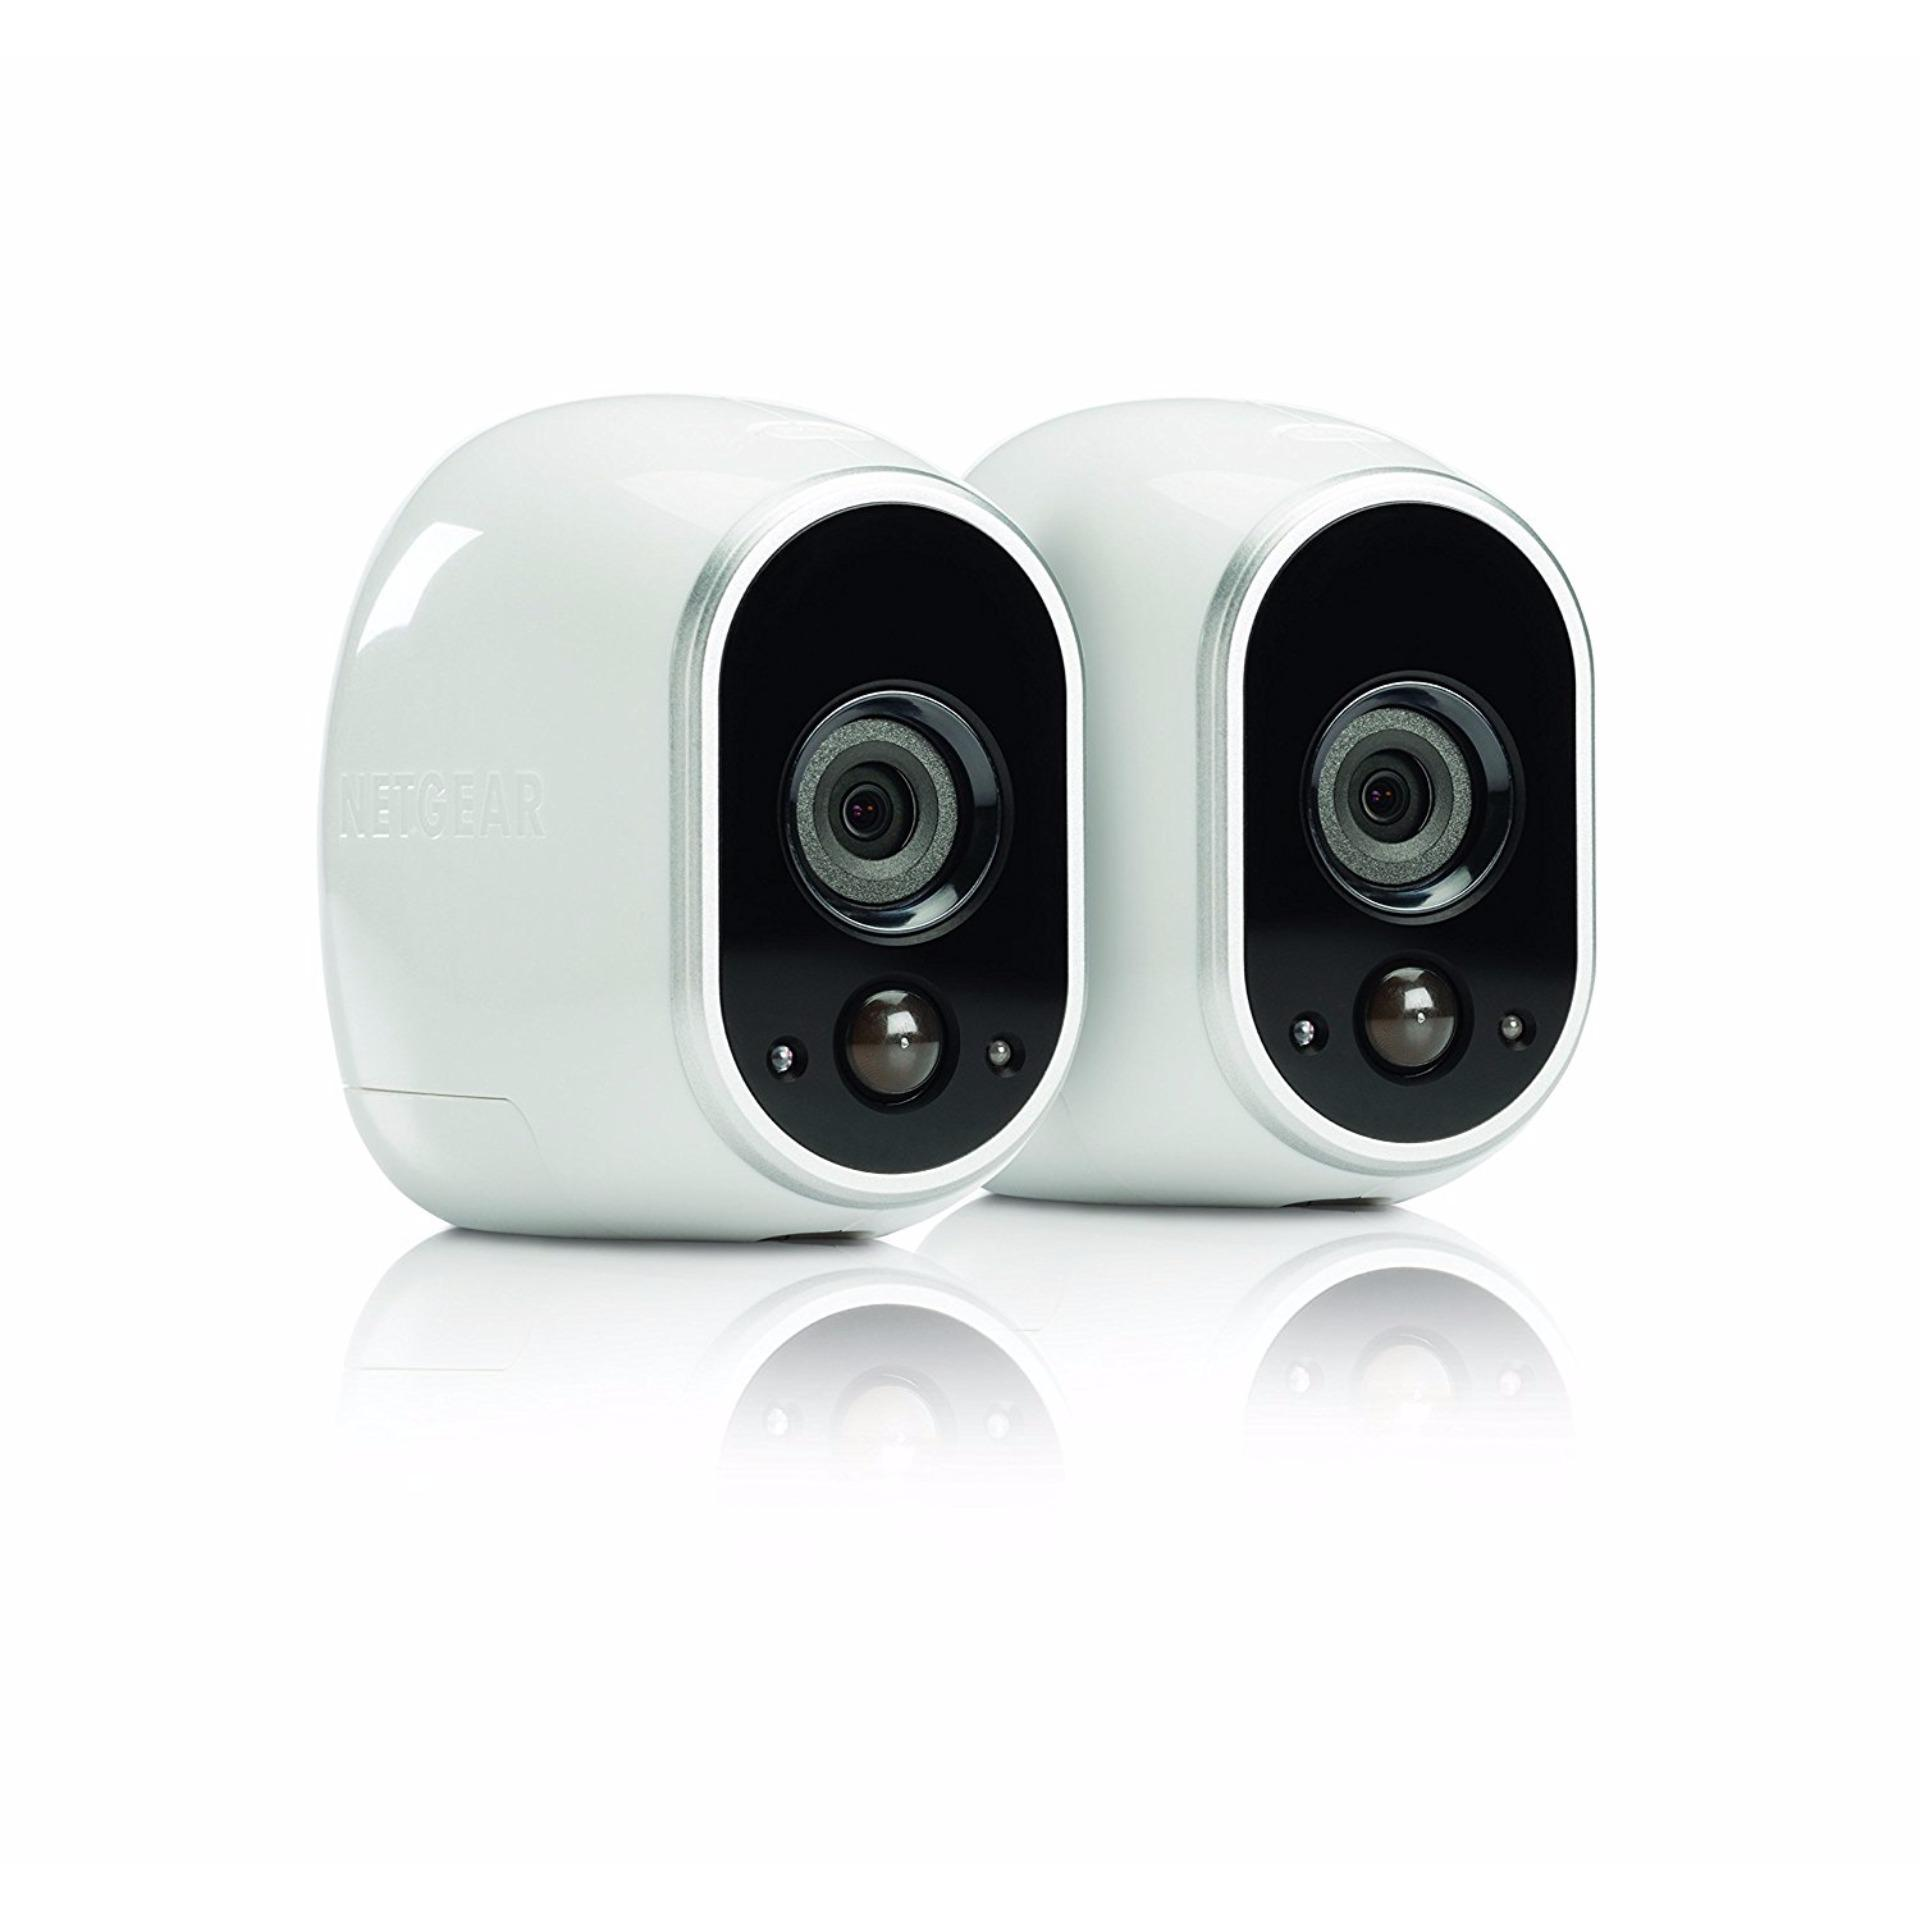 Netgear Arlo VMS3230 HD 2 Camera Smart Home Security System